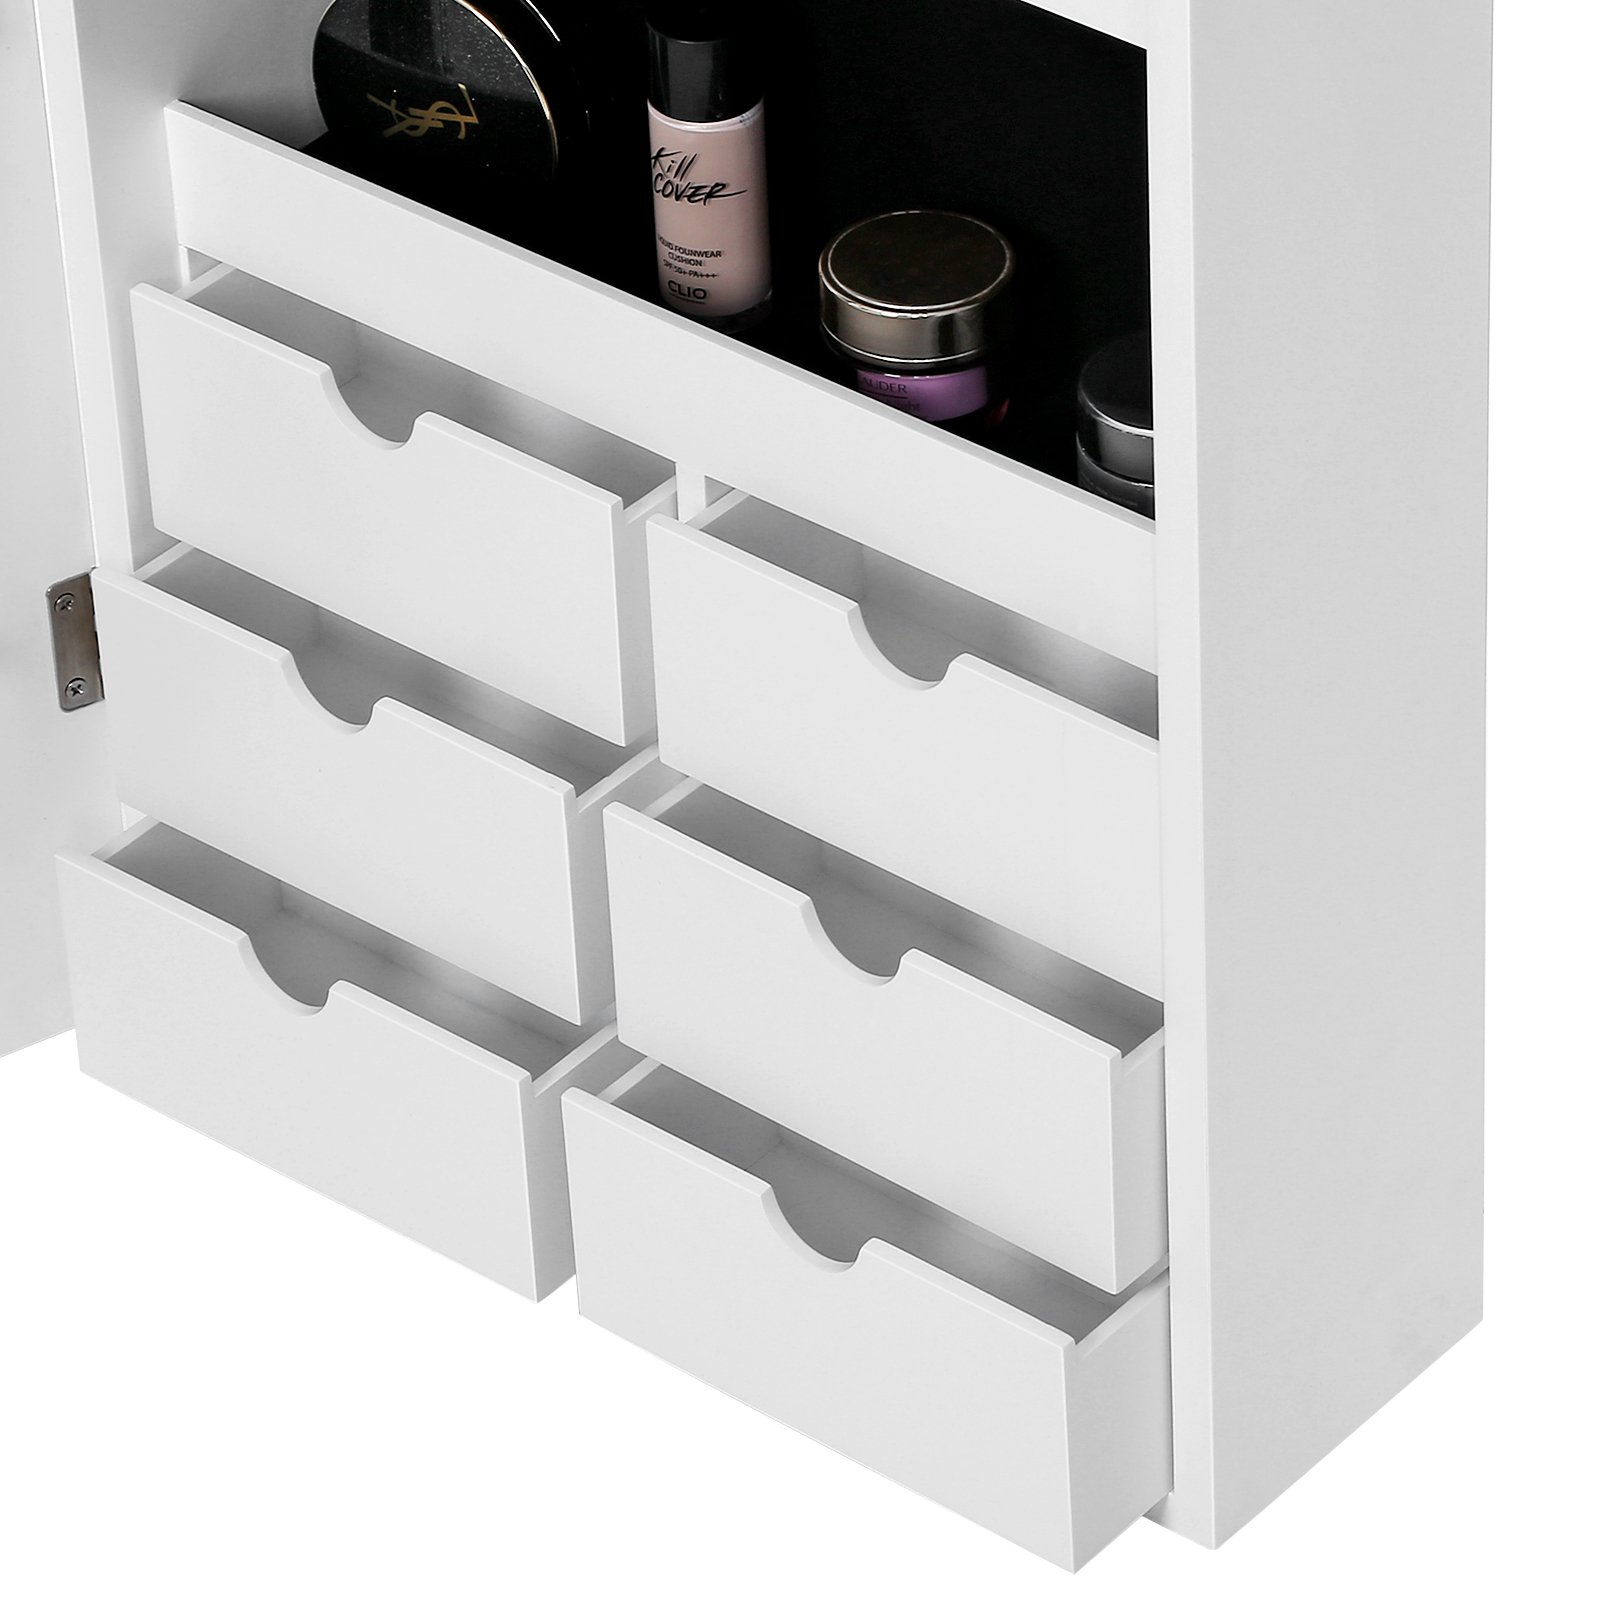 SONGMICS LED Jewelry Cabinet Armoire with 6 Drawers Lockable Door/Wall Mounted Jewelry Organizer White Patented UJJC88W by SONGMICS (Image #6)